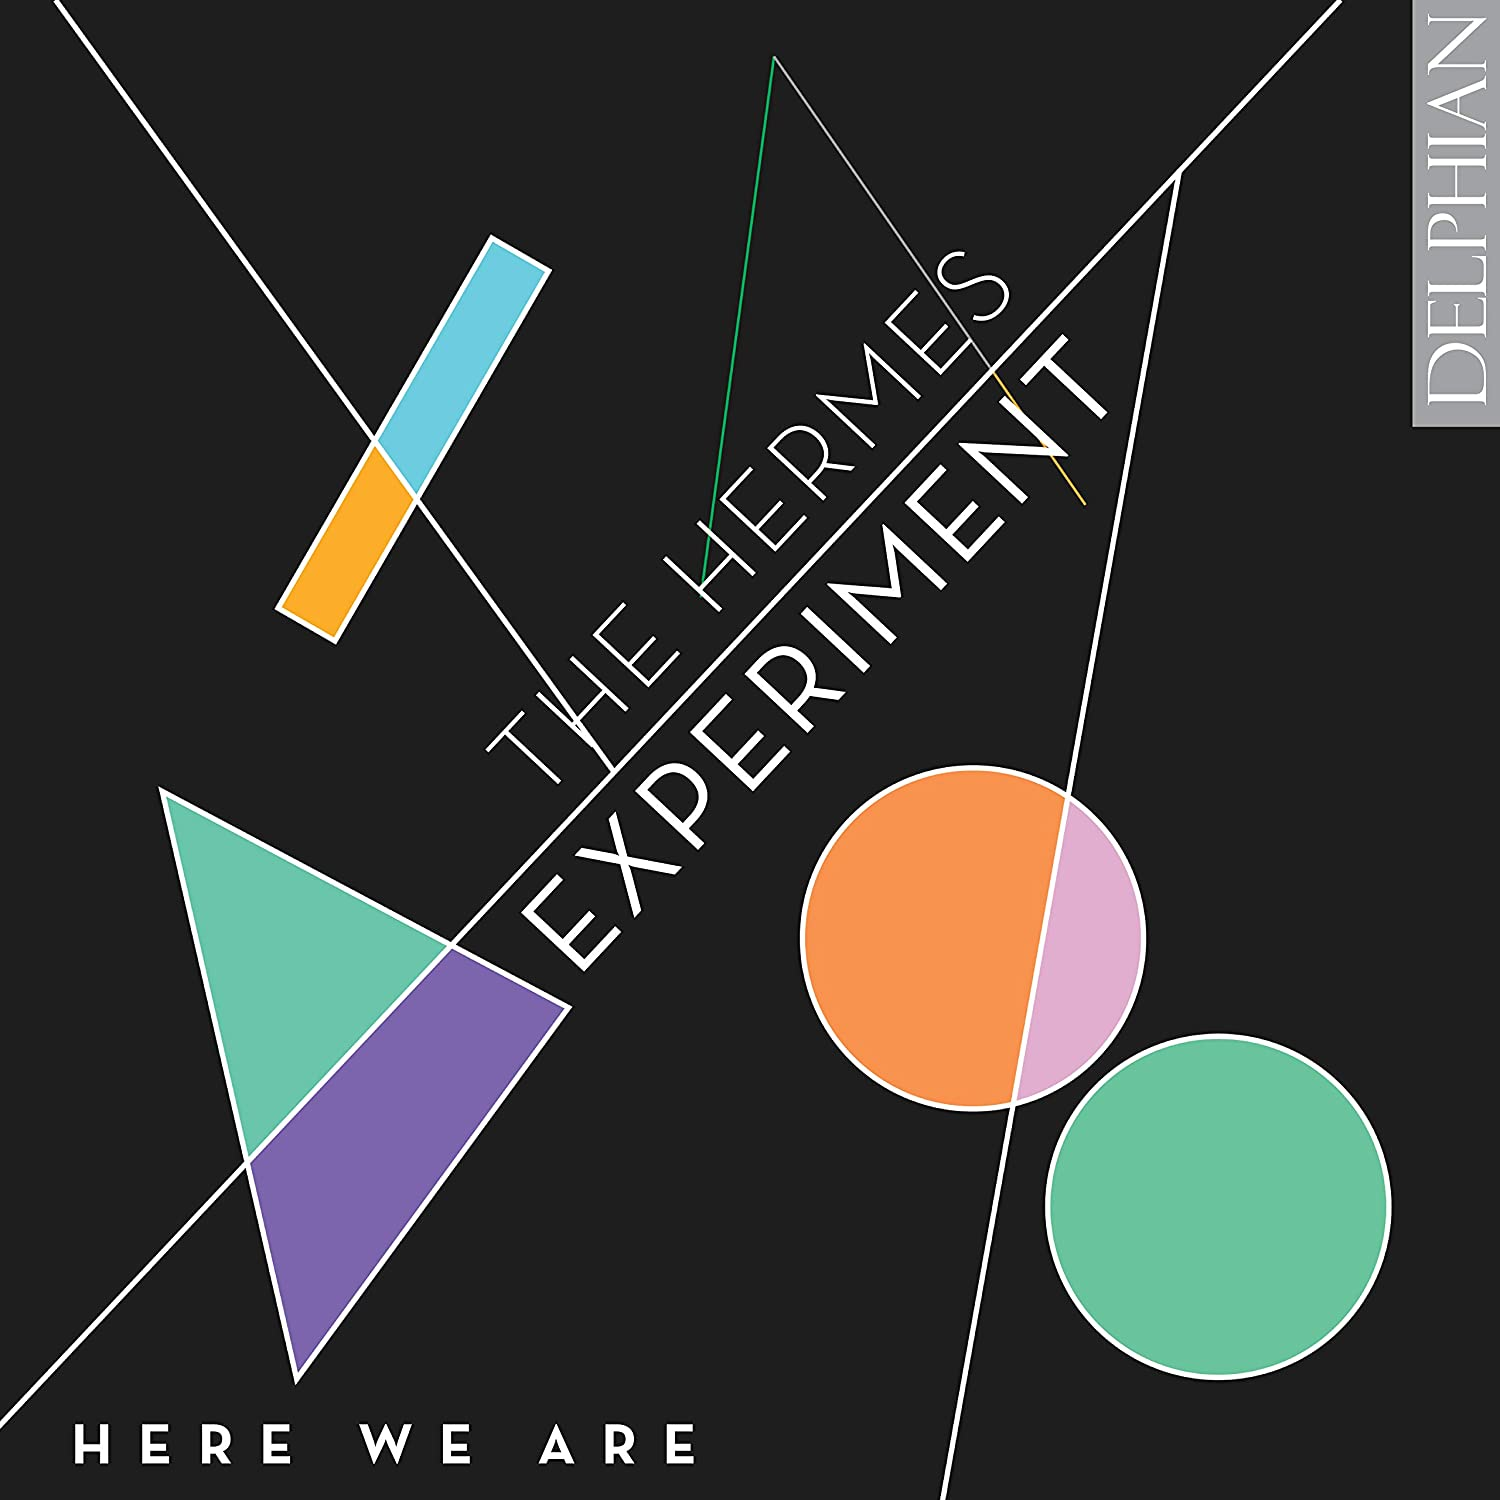 Review of The Hermes Experiment: Here We Are